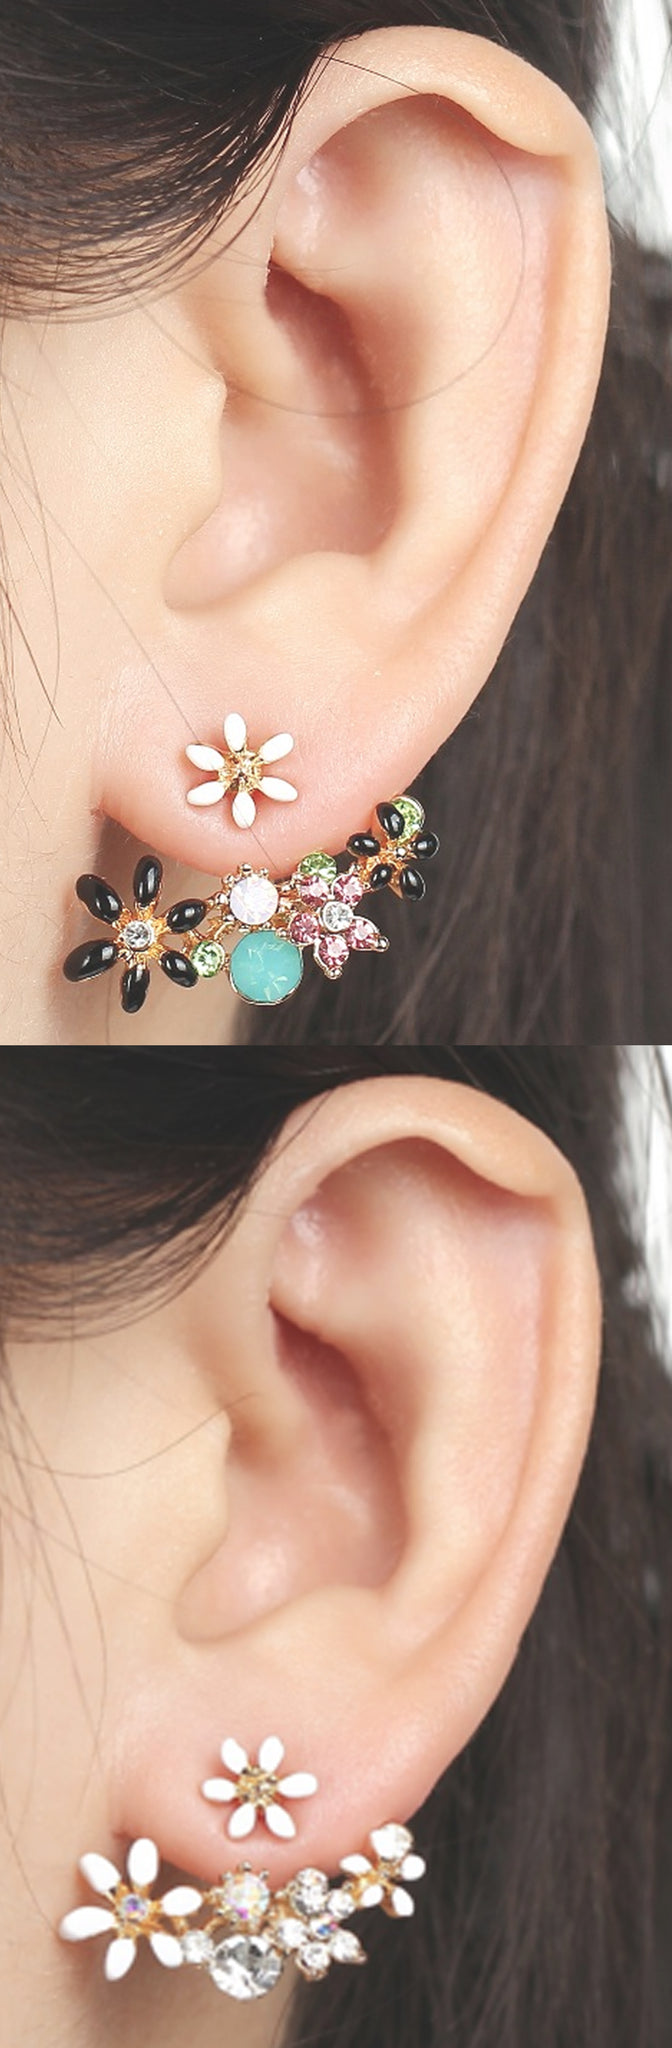 Pretty Ear Piercing Ideas at MyBodiArt.com - Vintage Black and White Earring Jacket Earrings